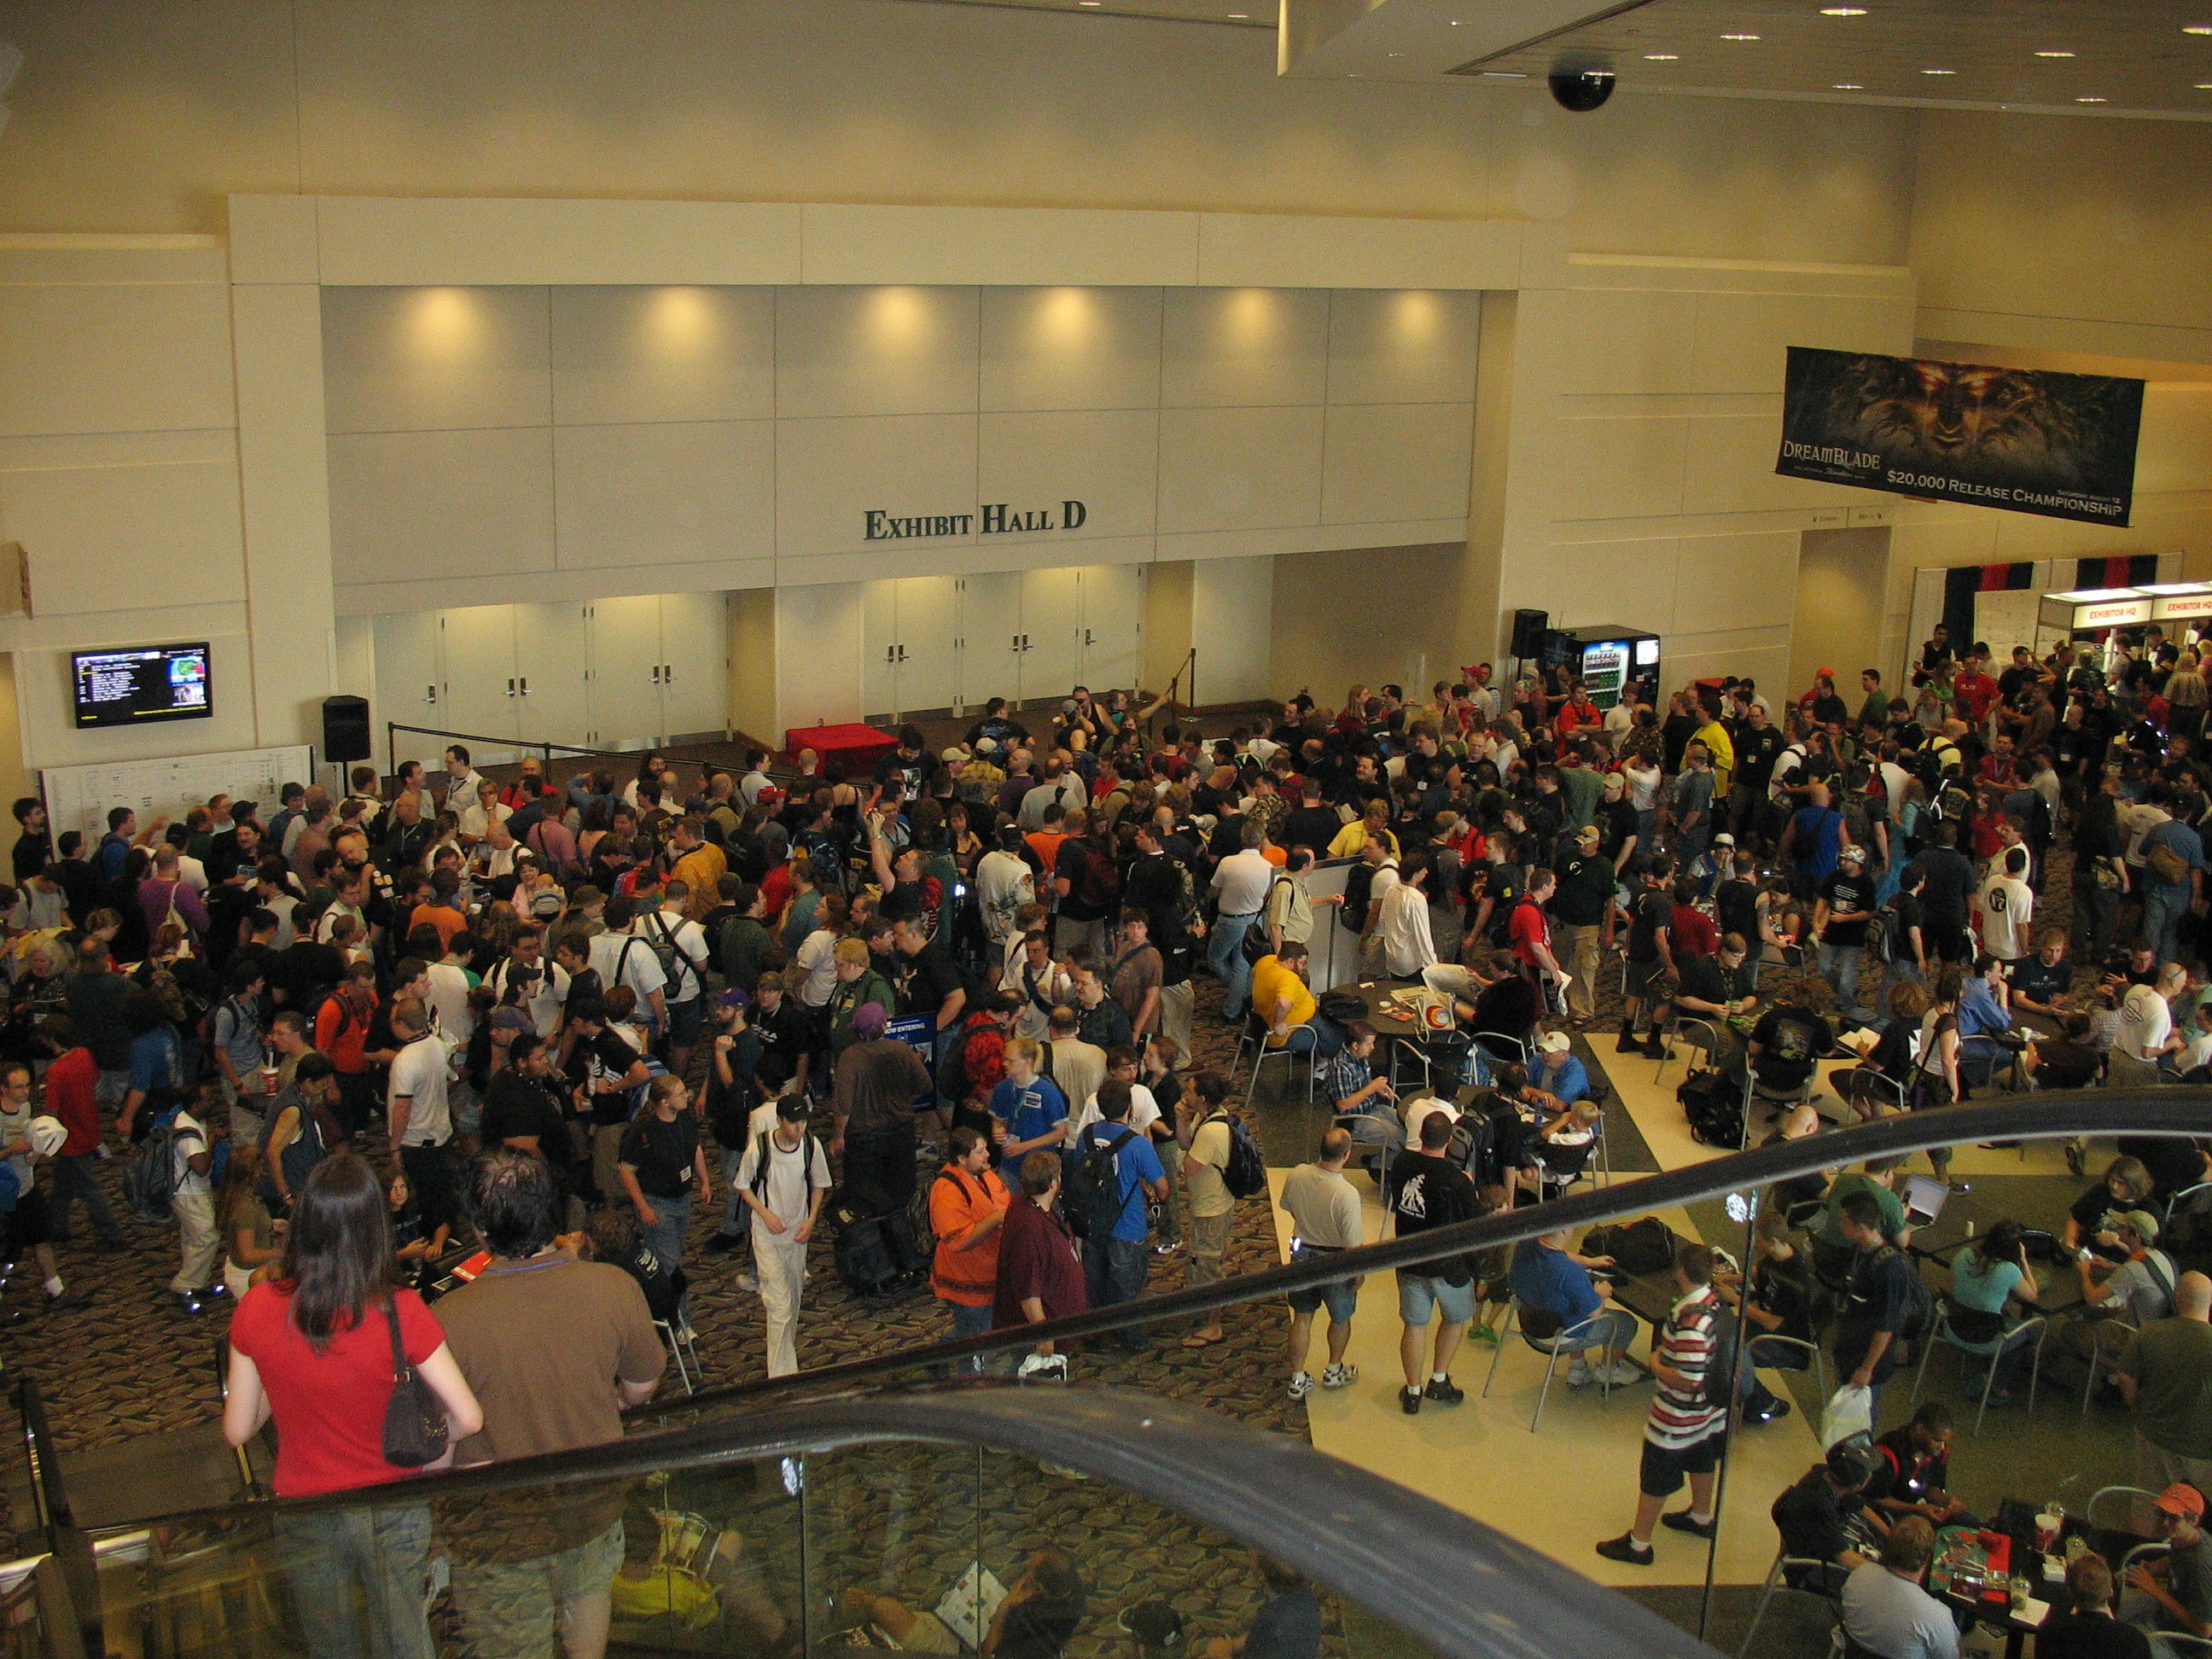 Hundreds of gamers waiting for the GenCon Exhibit Hall to open.